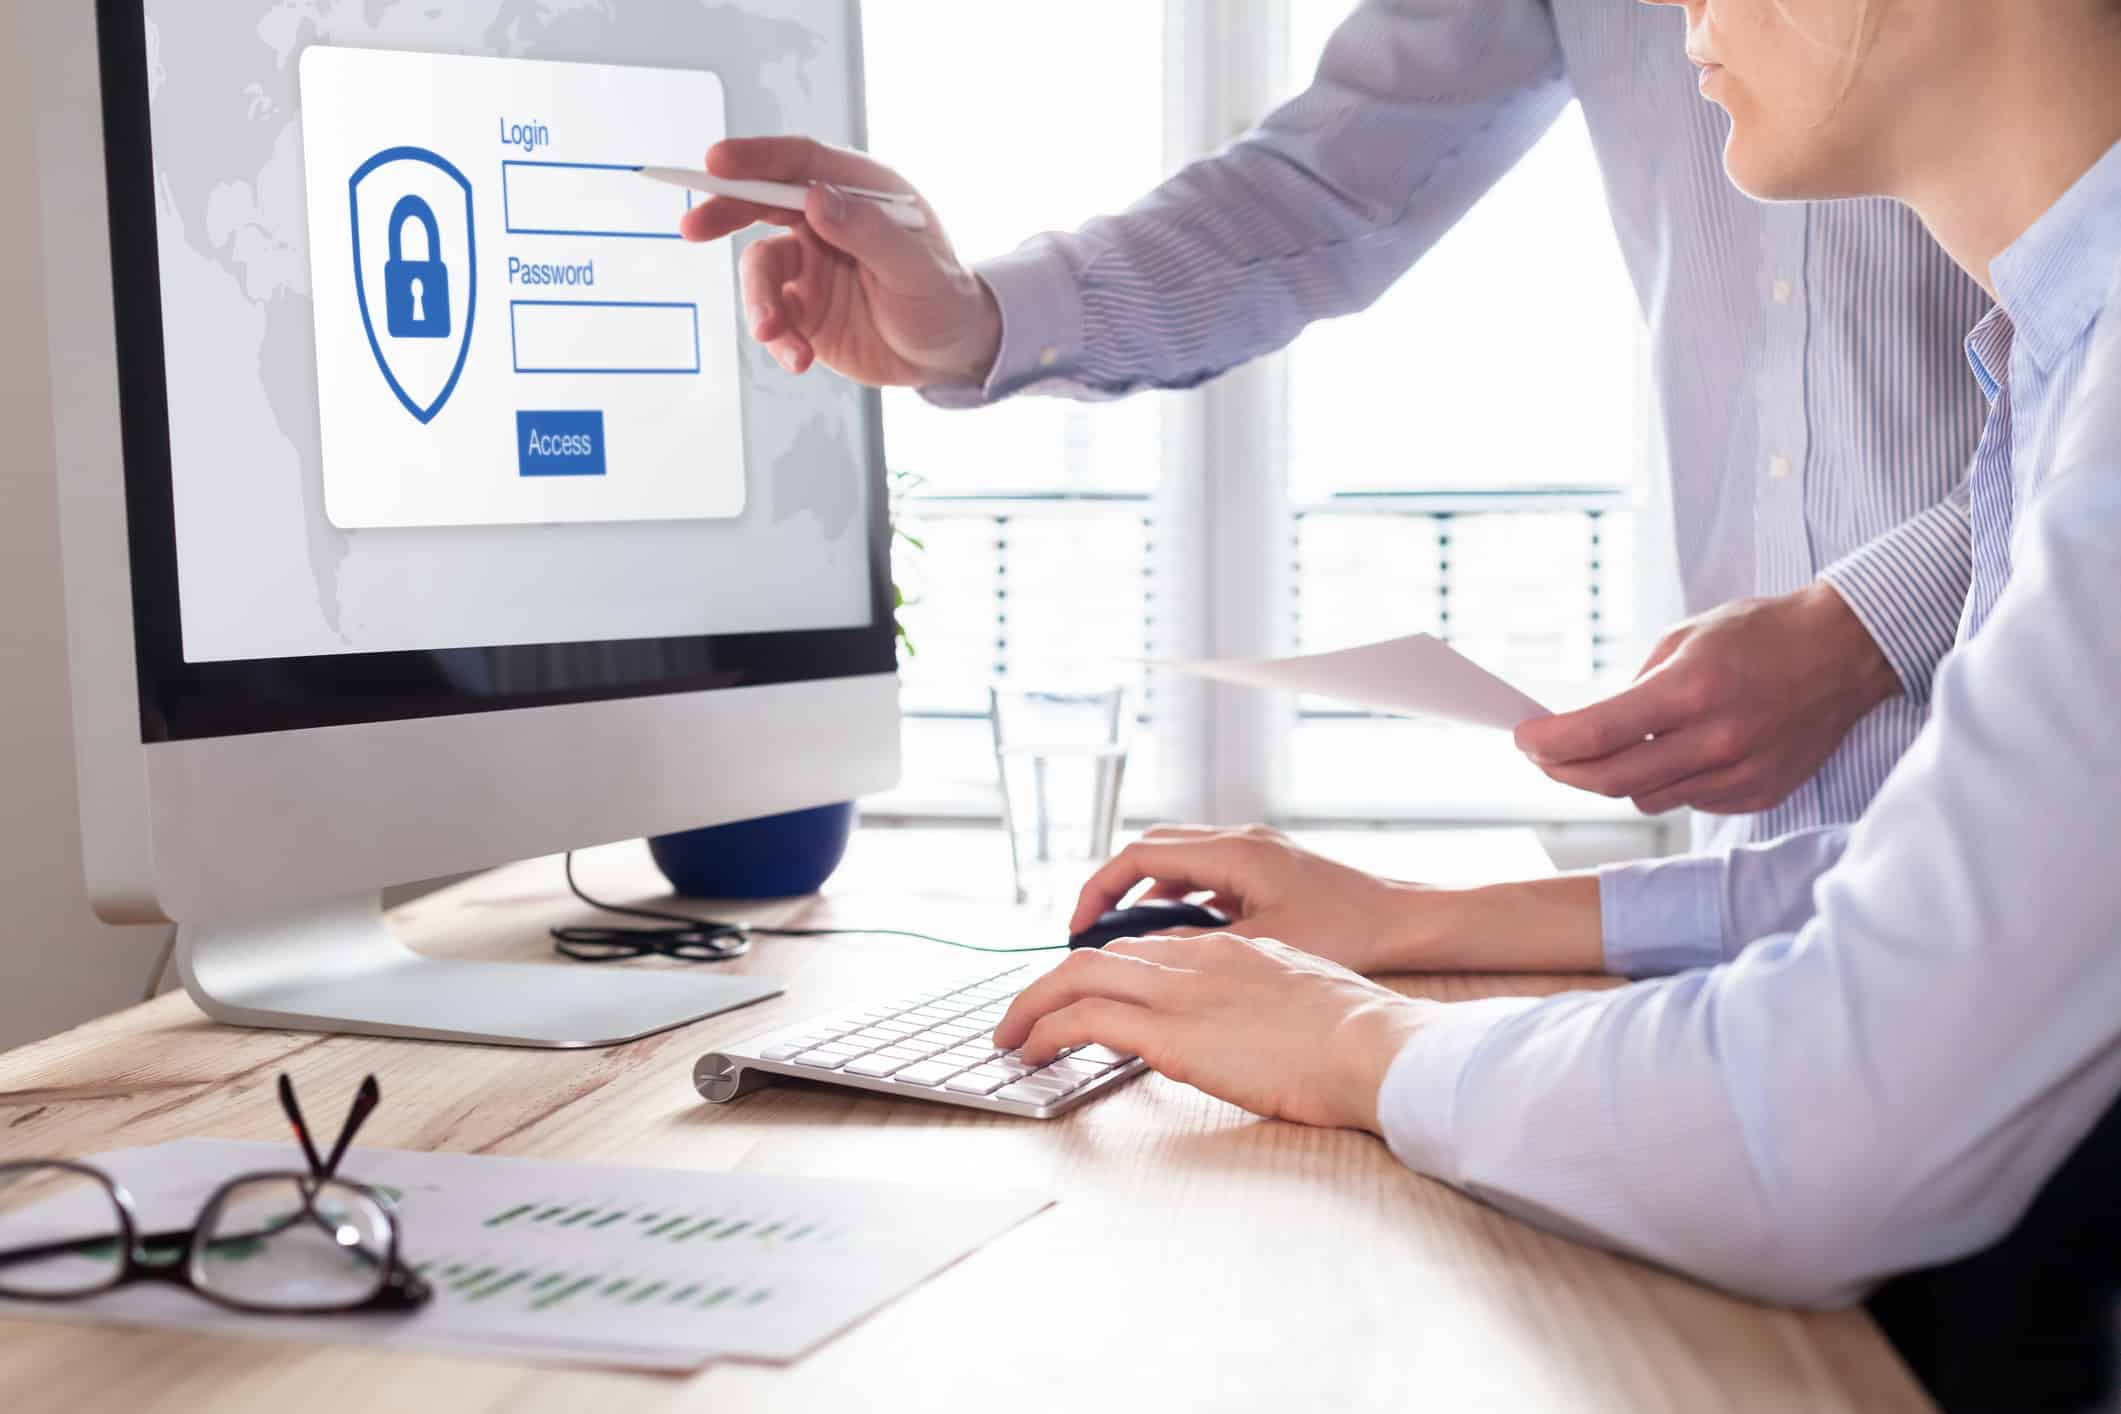 Manager providing authentication credentials (login, password) to business person to access confidential data on computer screen.